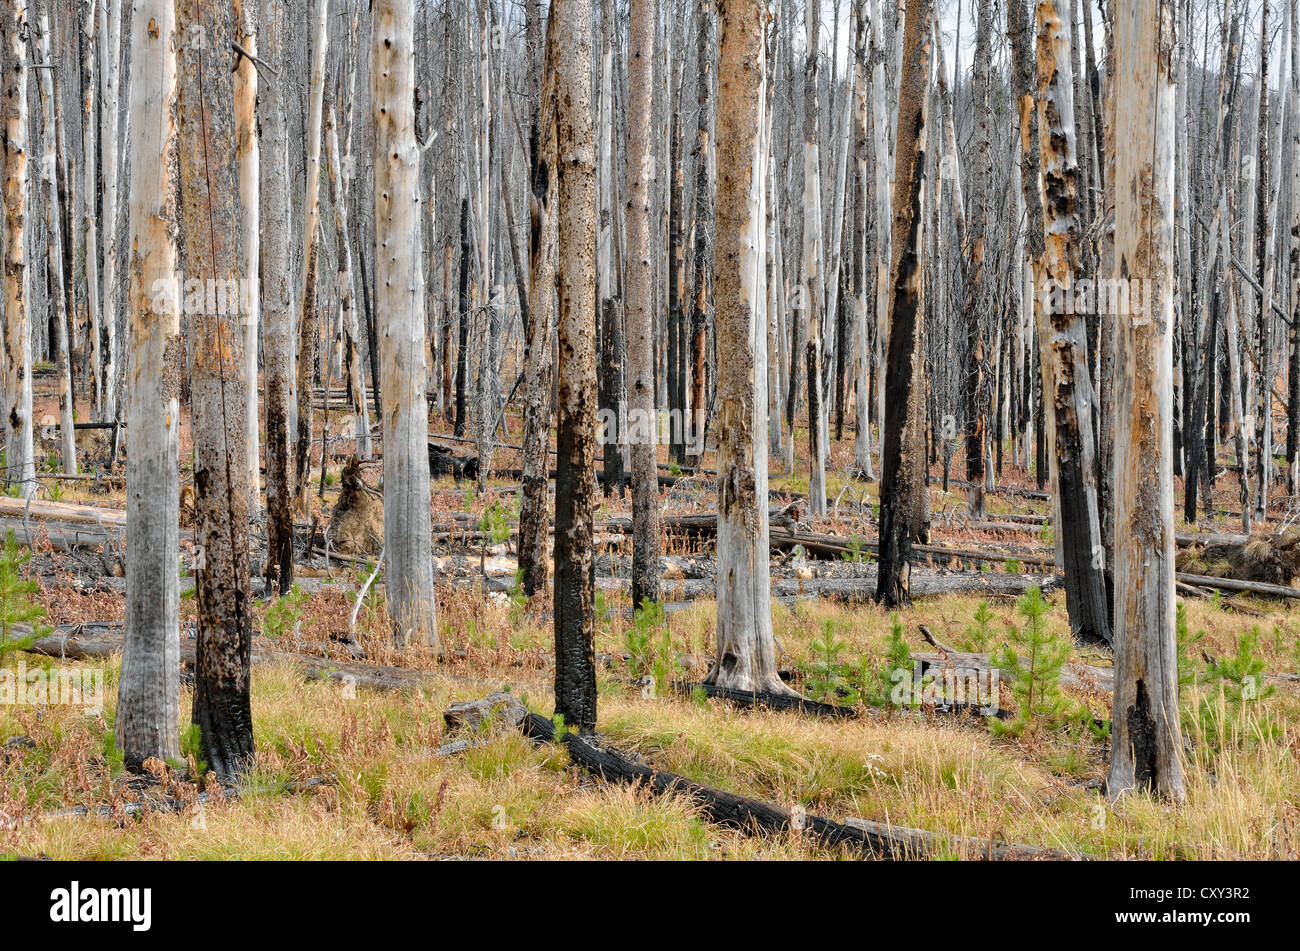 Pine trees (Pinus sp.) damaged by a forest fire, Sylvan Pass, Yellowstone National Park, Wyoming, USA - Stock Image